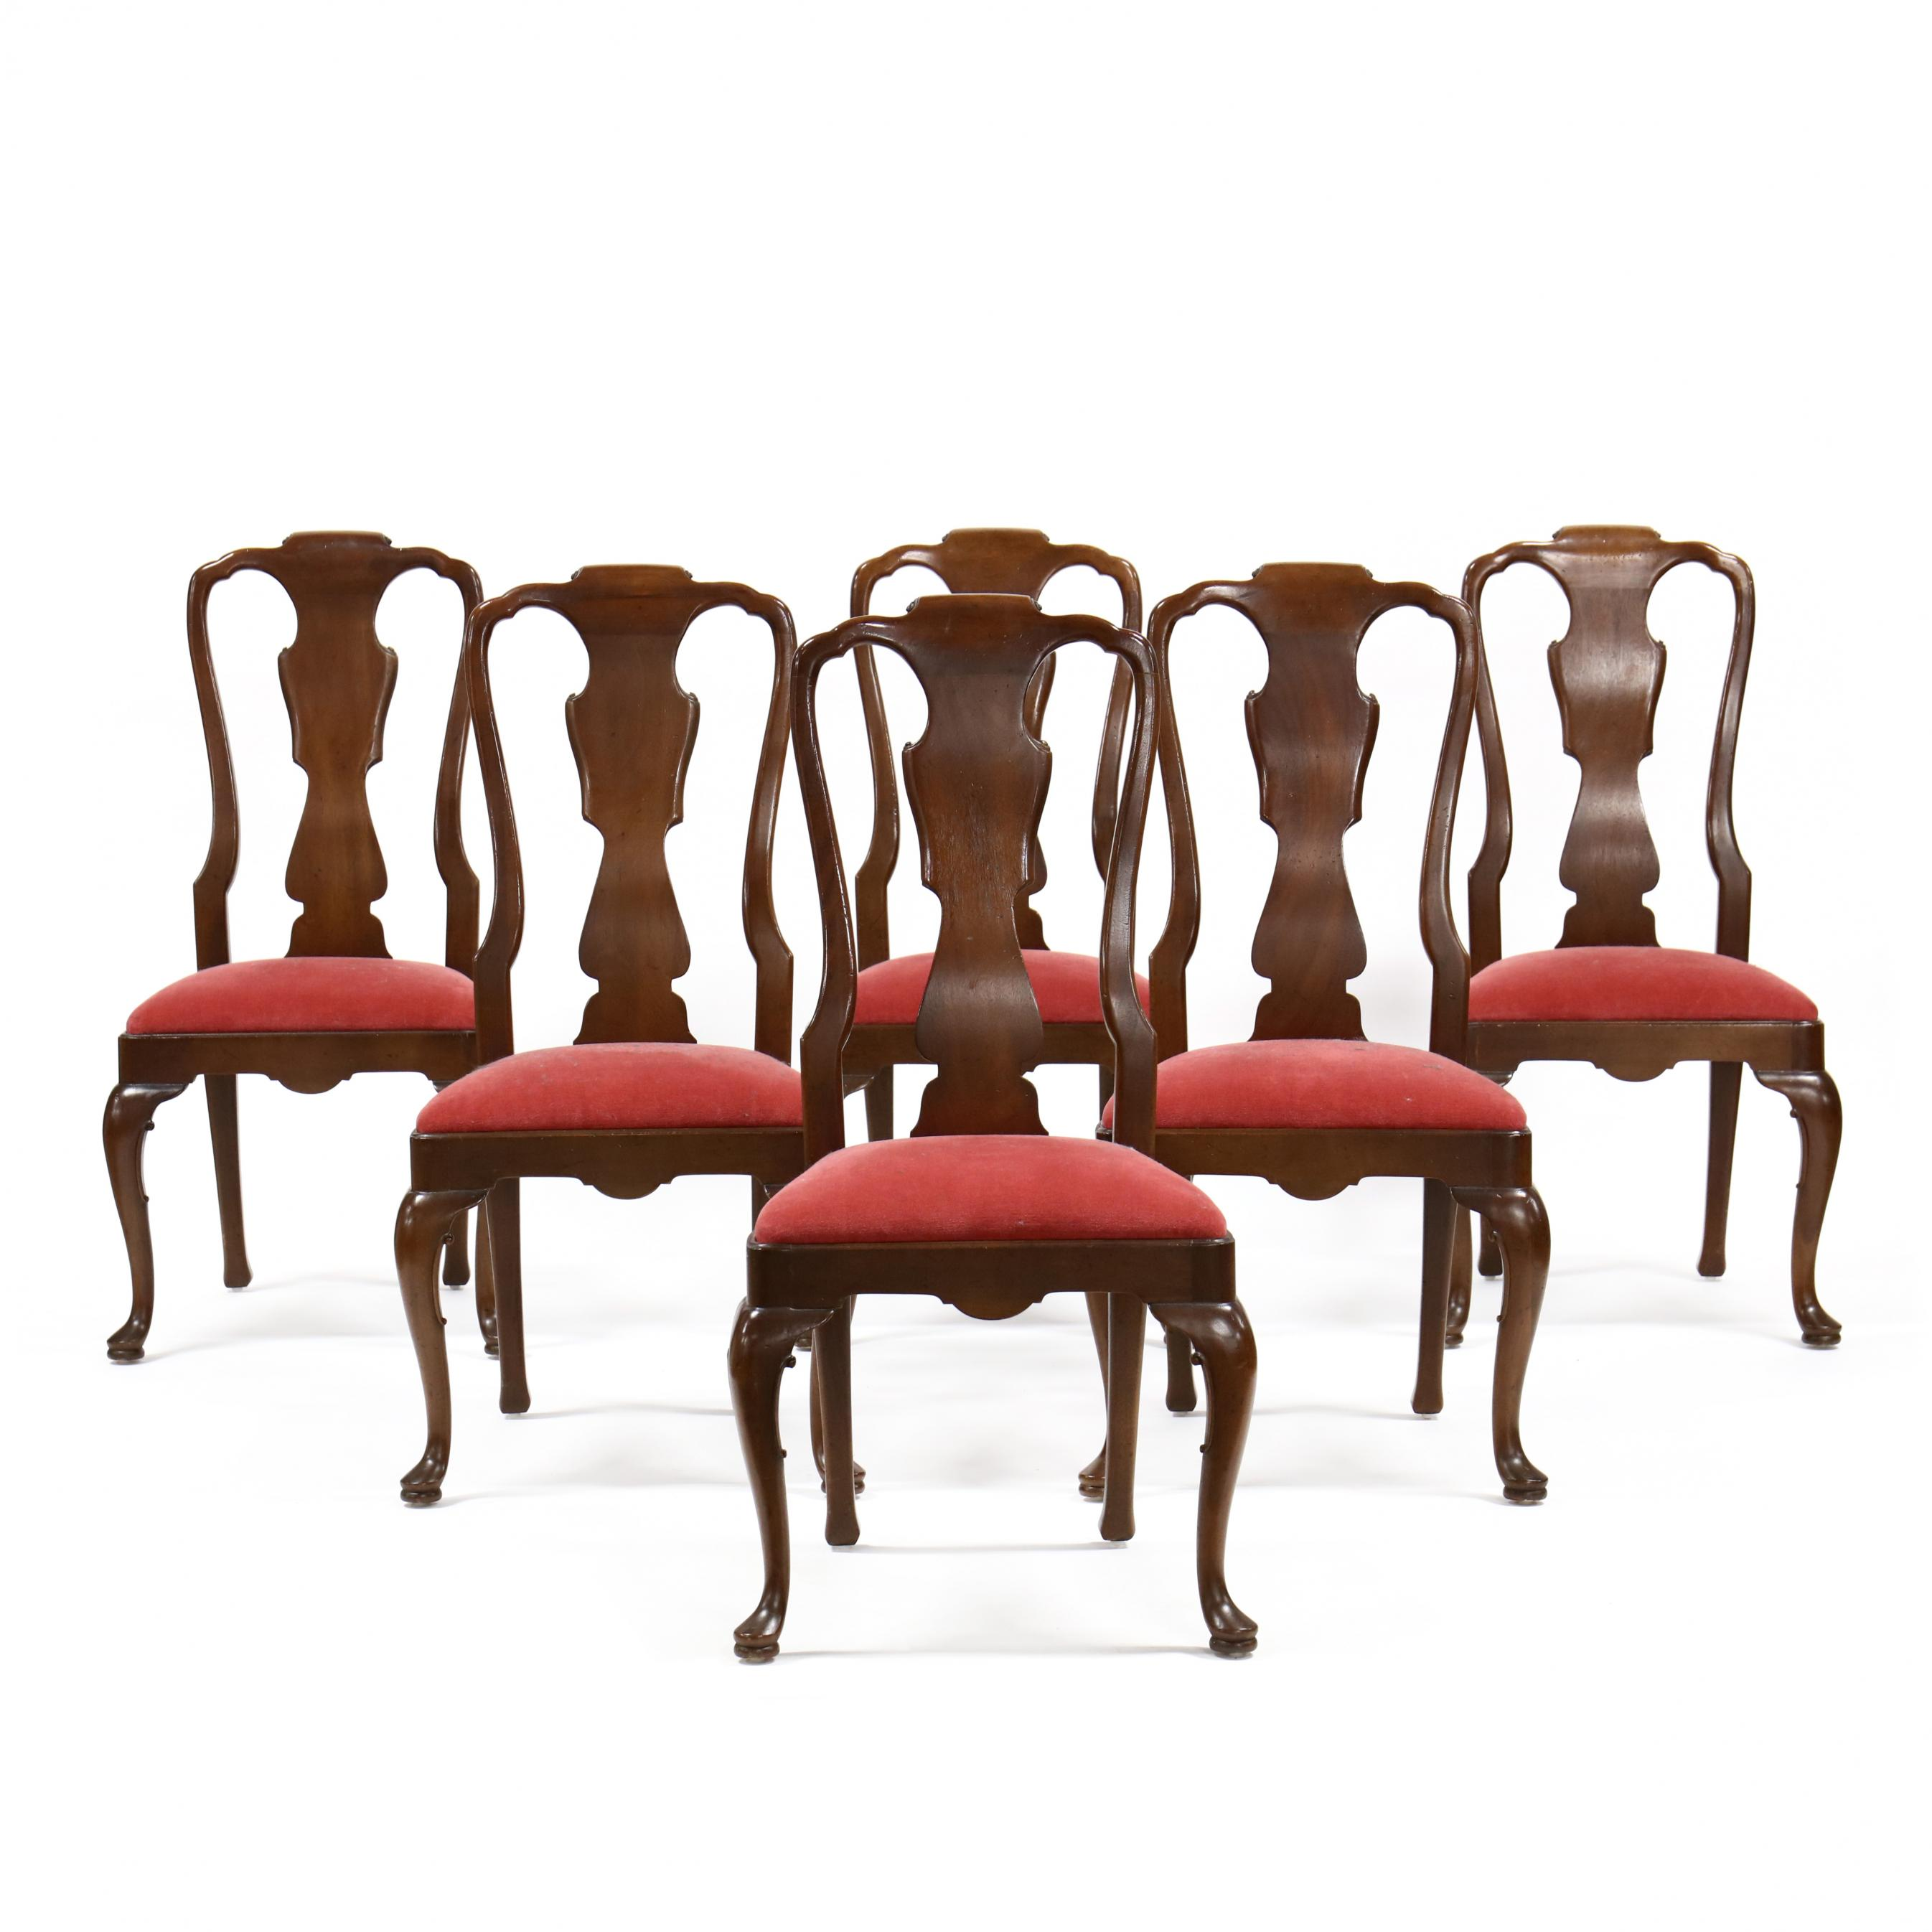 henredon-set-of-six-queen-anne-style-dining-chairs